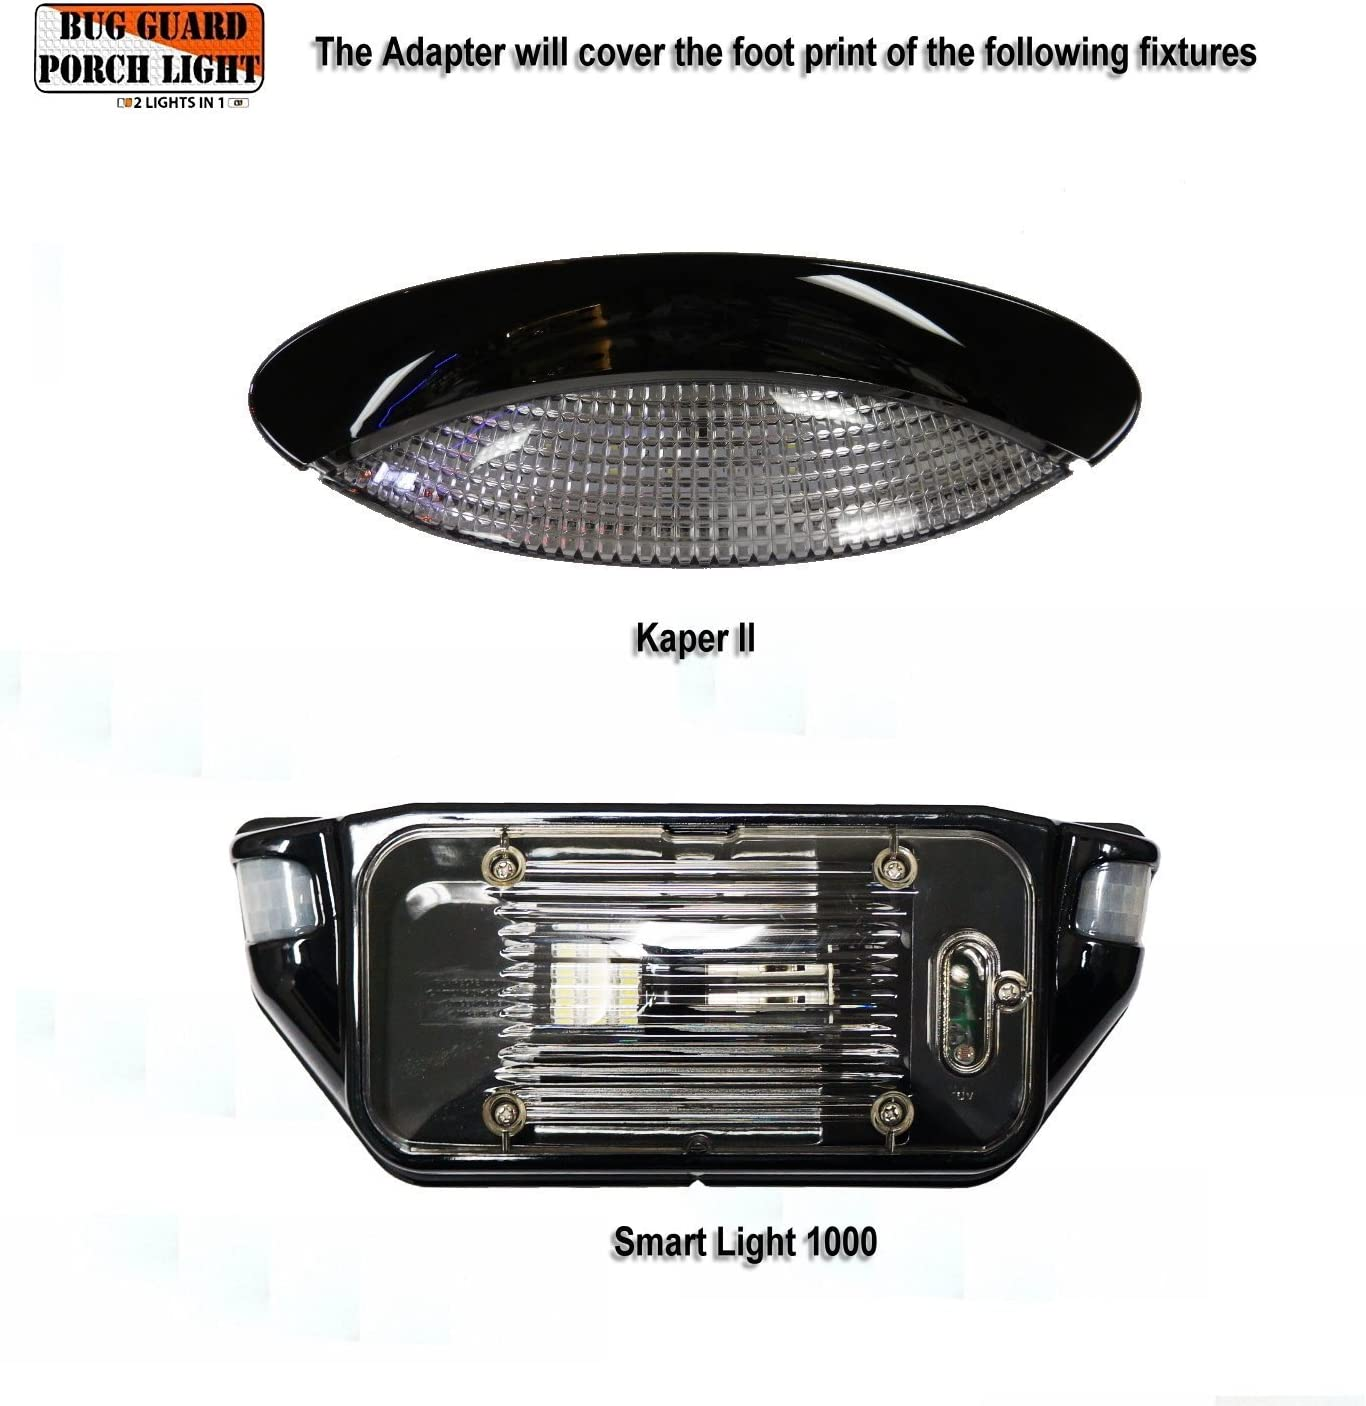 White //520 Lunen Amber BG520W-A 12 Volt Functional Exterior RV Long-Life LED Flood Porch Light with Bright 220 Lumen 2 Lights in one.